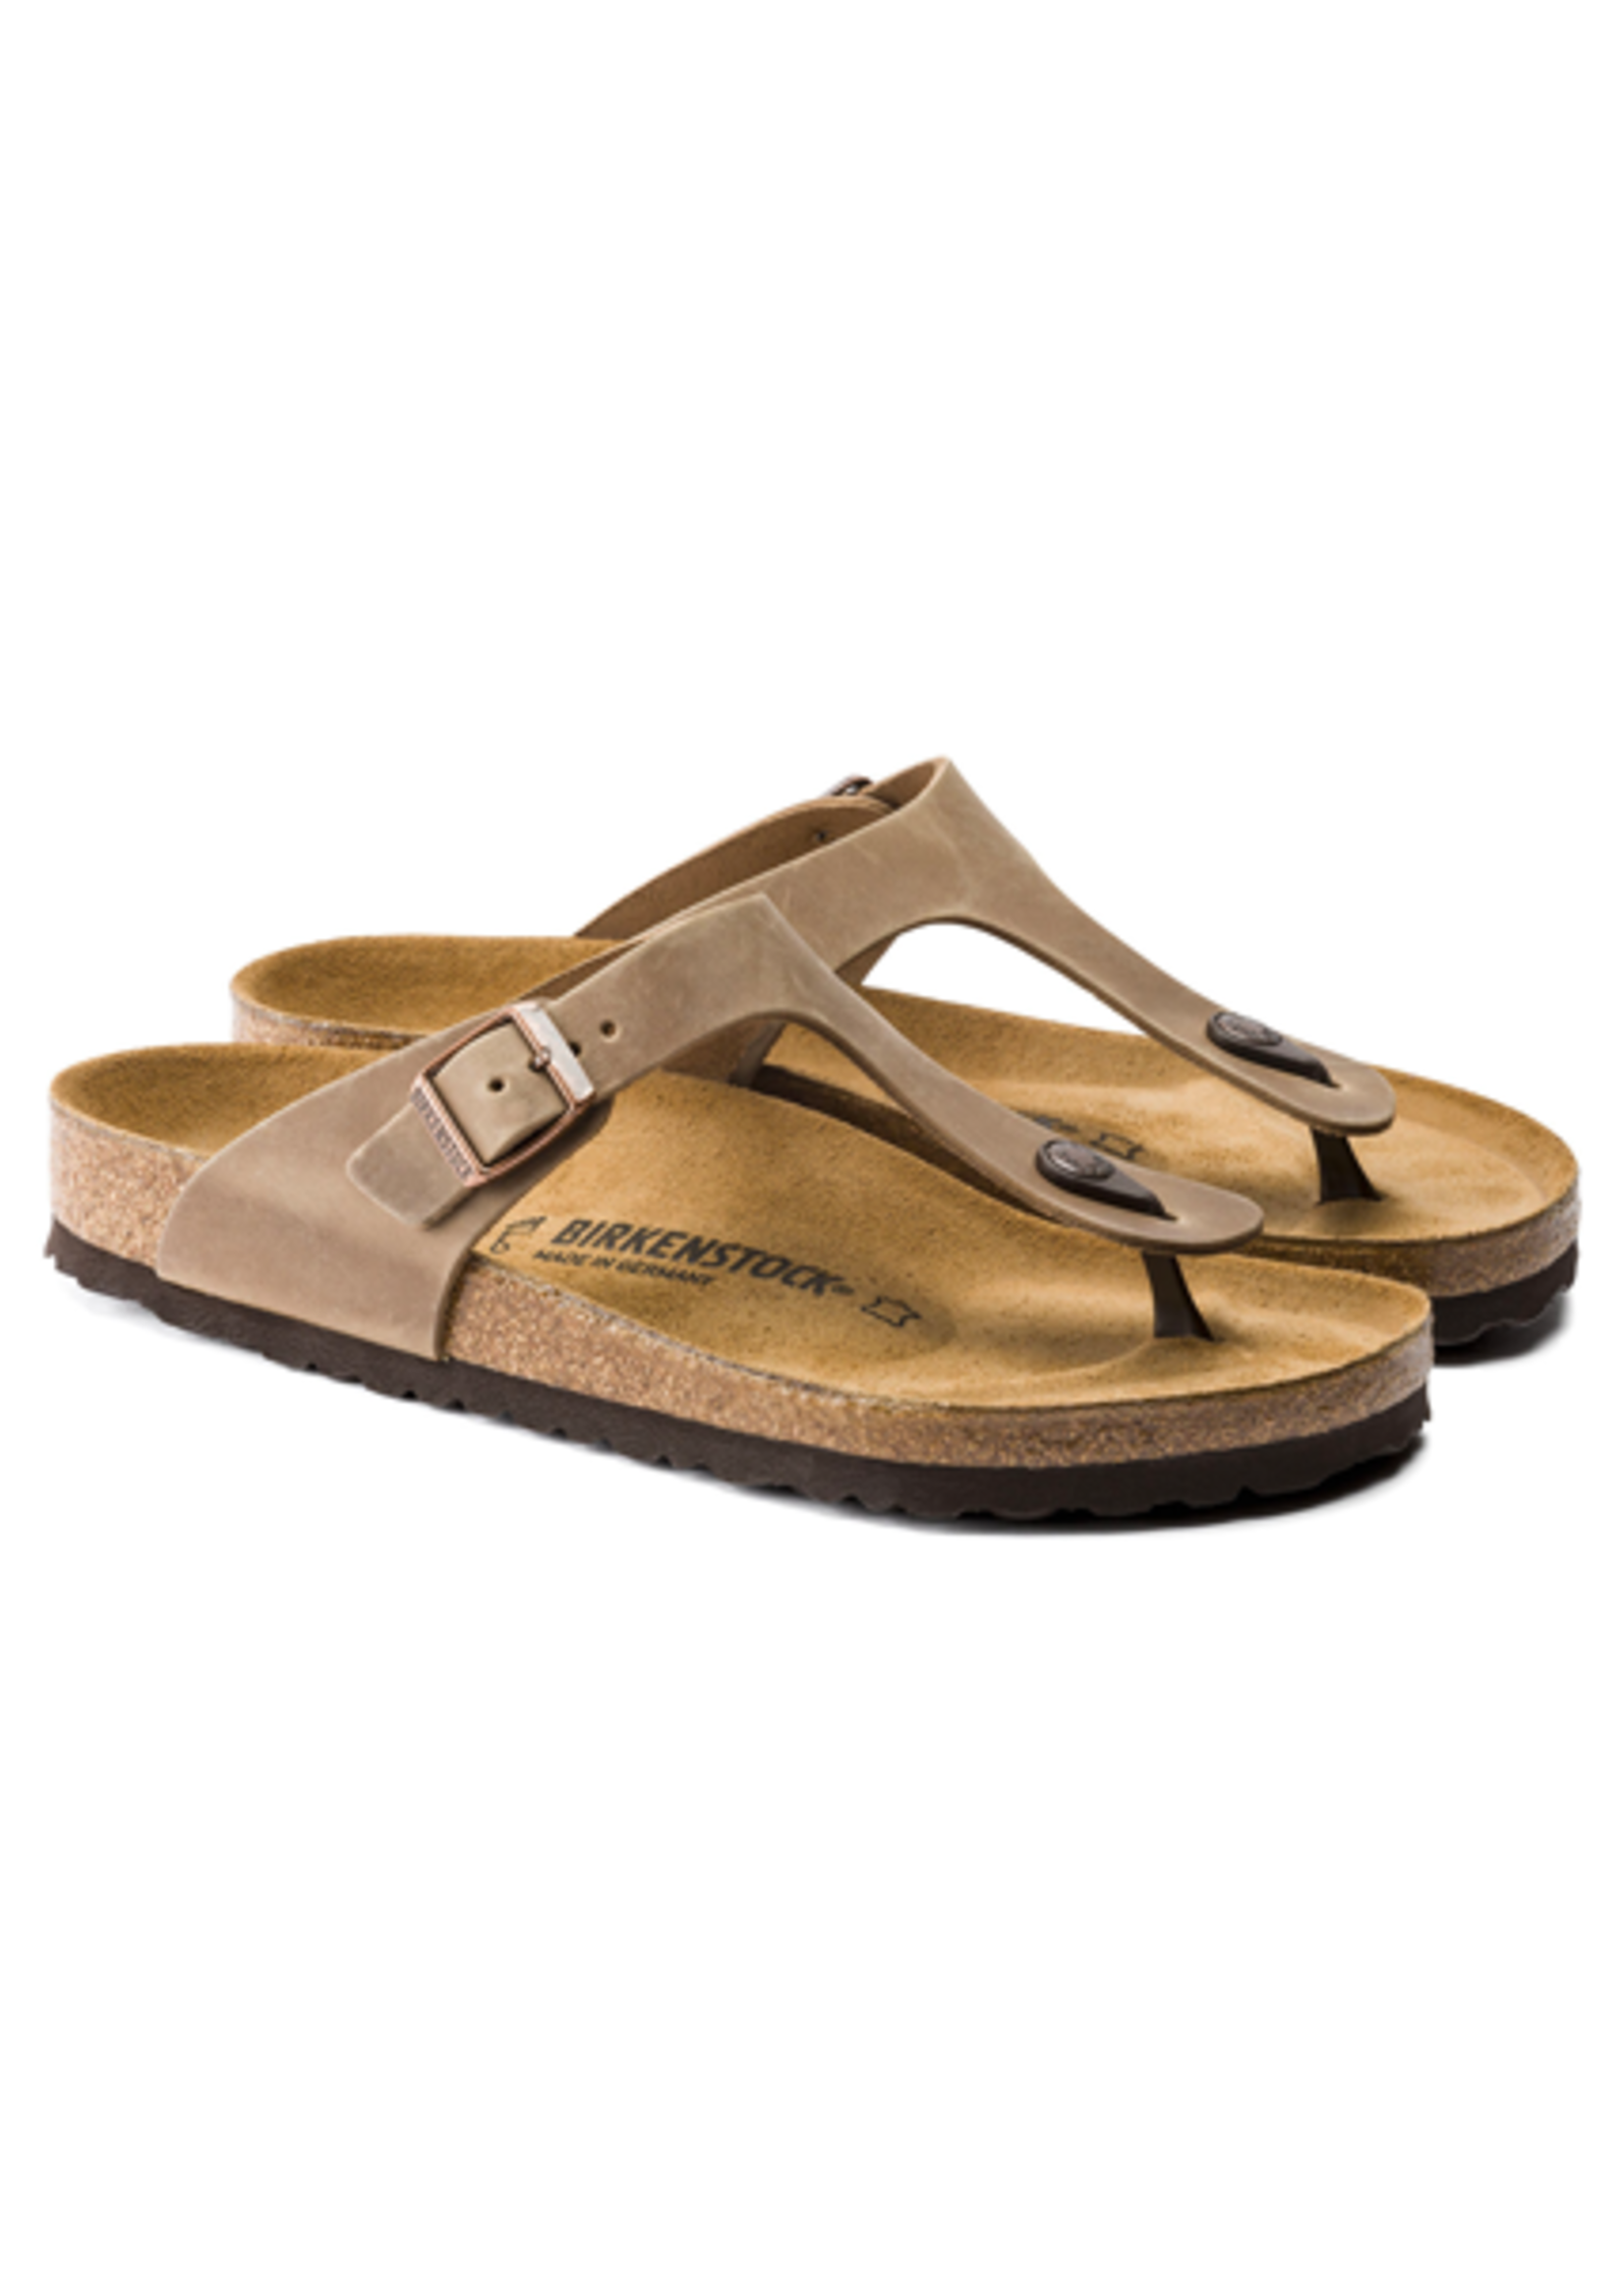 Birkenstock Gizeh -  Oiled Leather in Tobacco Brown (Classic Footbed - Suede Lined)